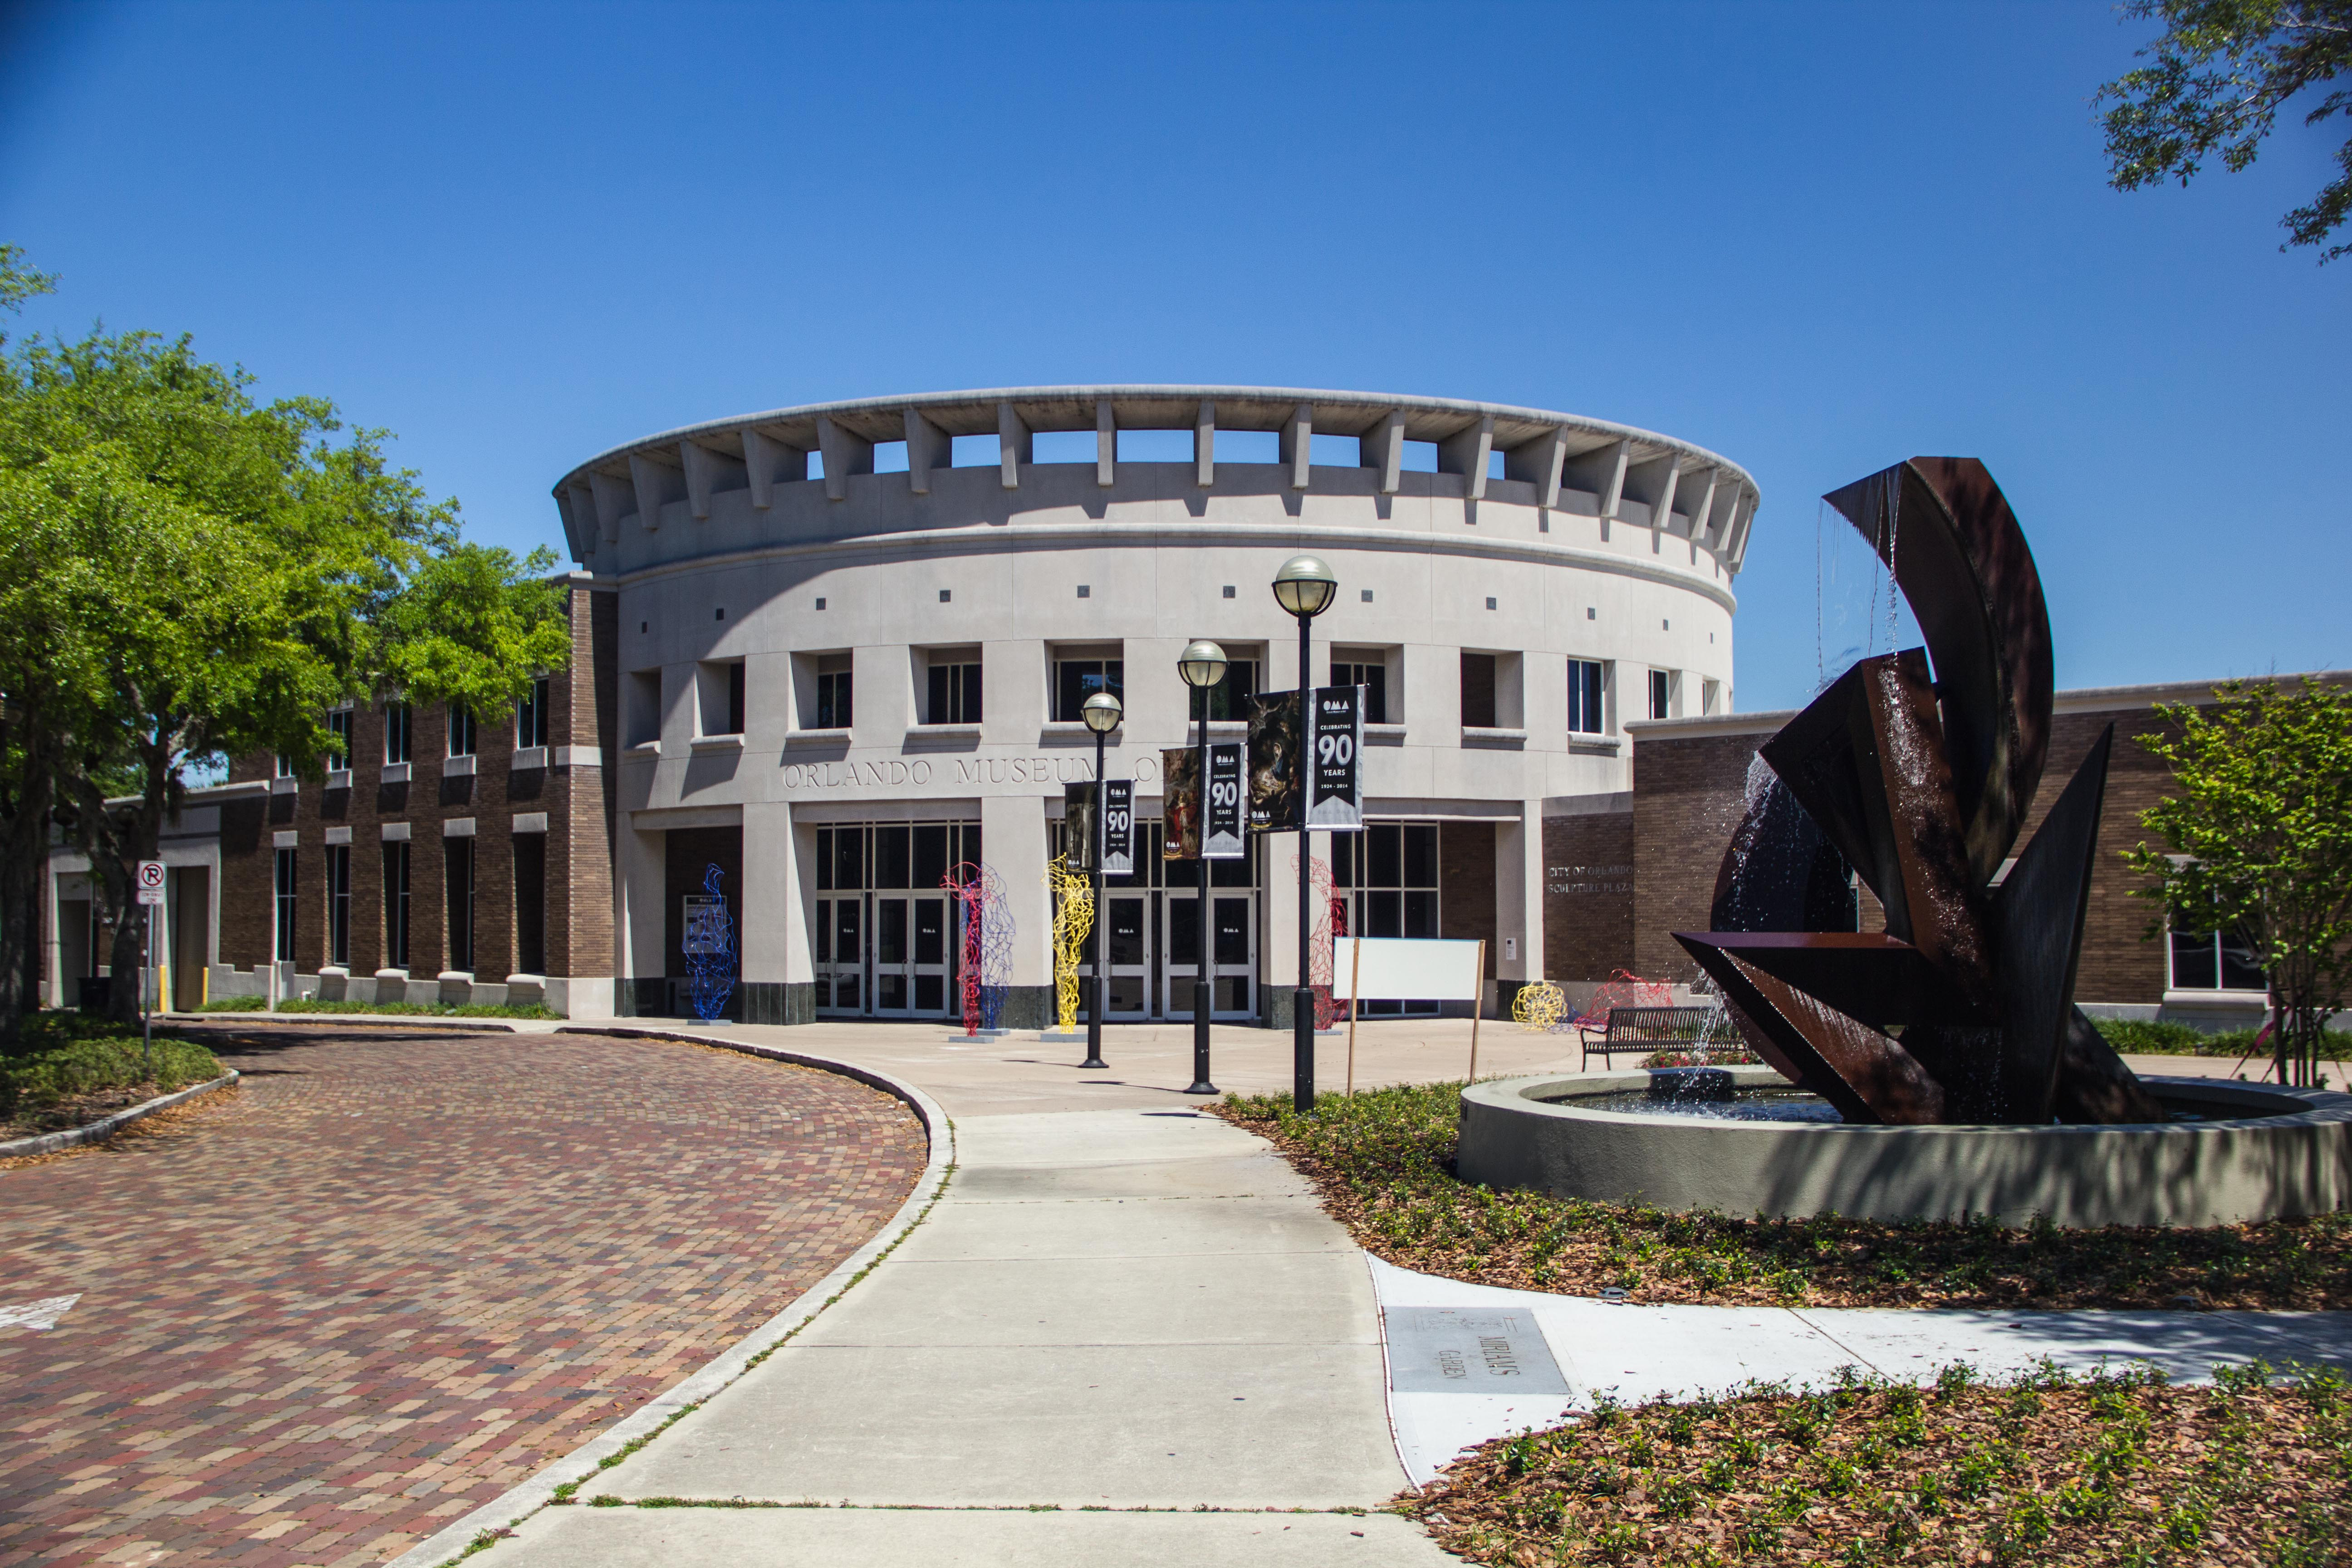 orlando museum of art Orlando museum of art in loch haven cultural park orlando museum of art with permanent collections of american art, african art and works of the ancient americas, the museum also hosts prominent traveling exhibitions.